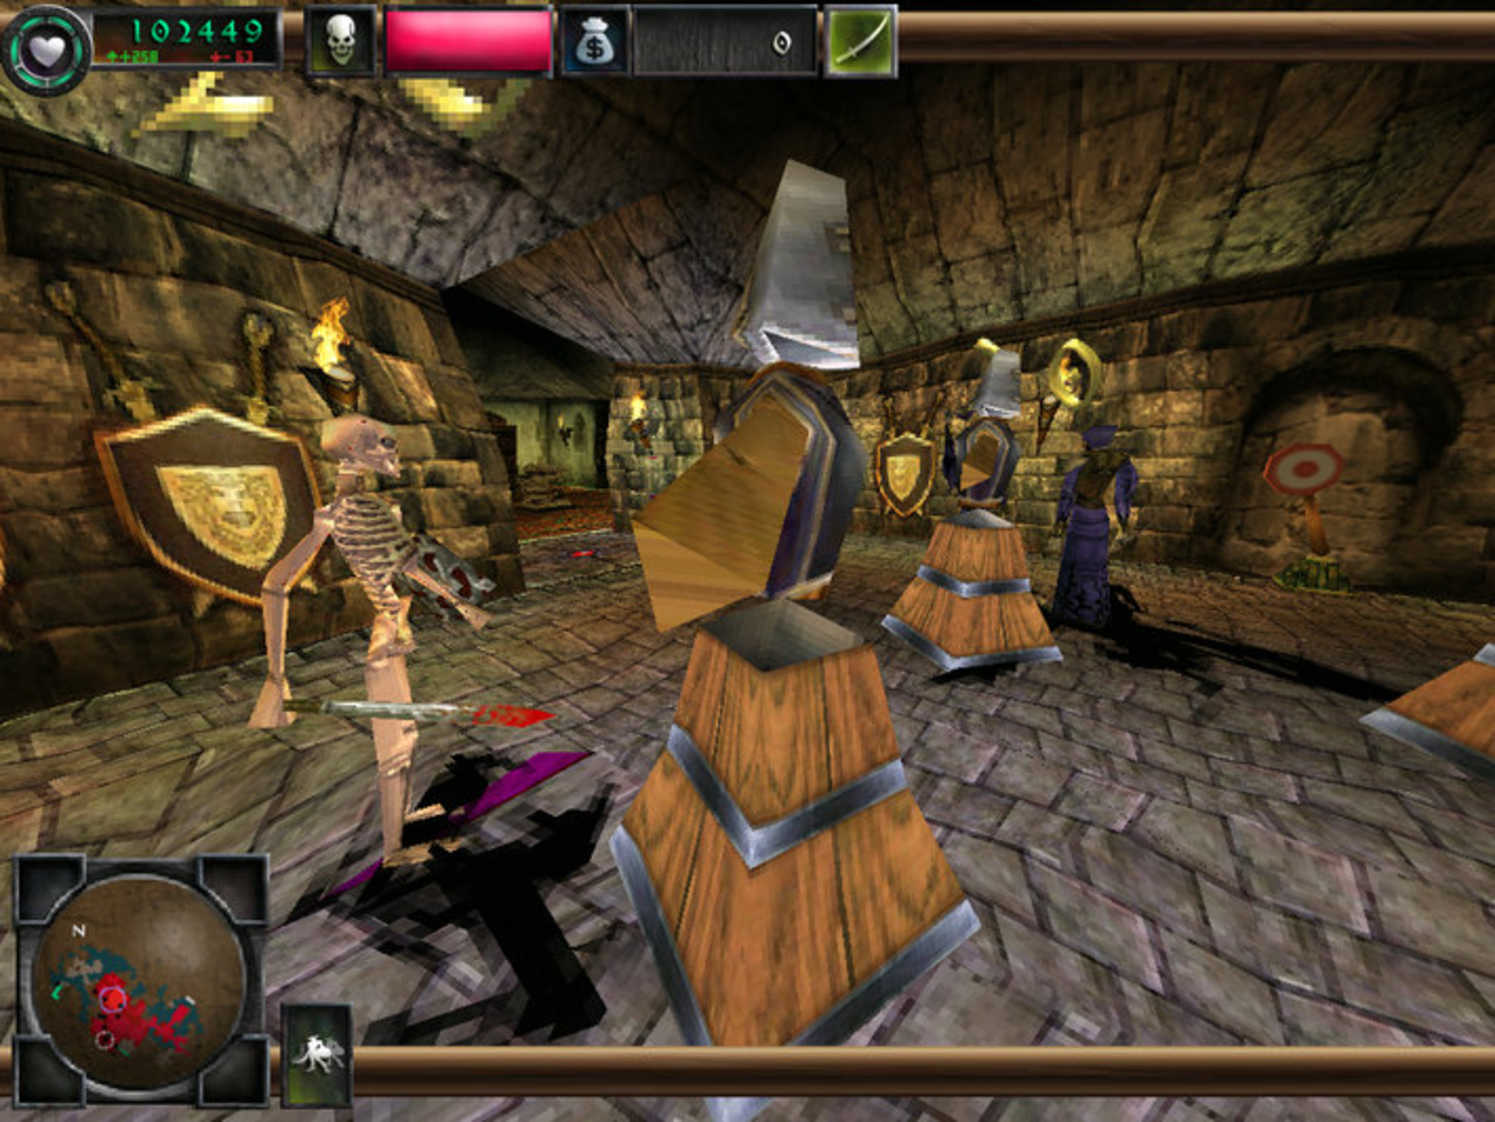 dungeon keeper 2 patch 1.3